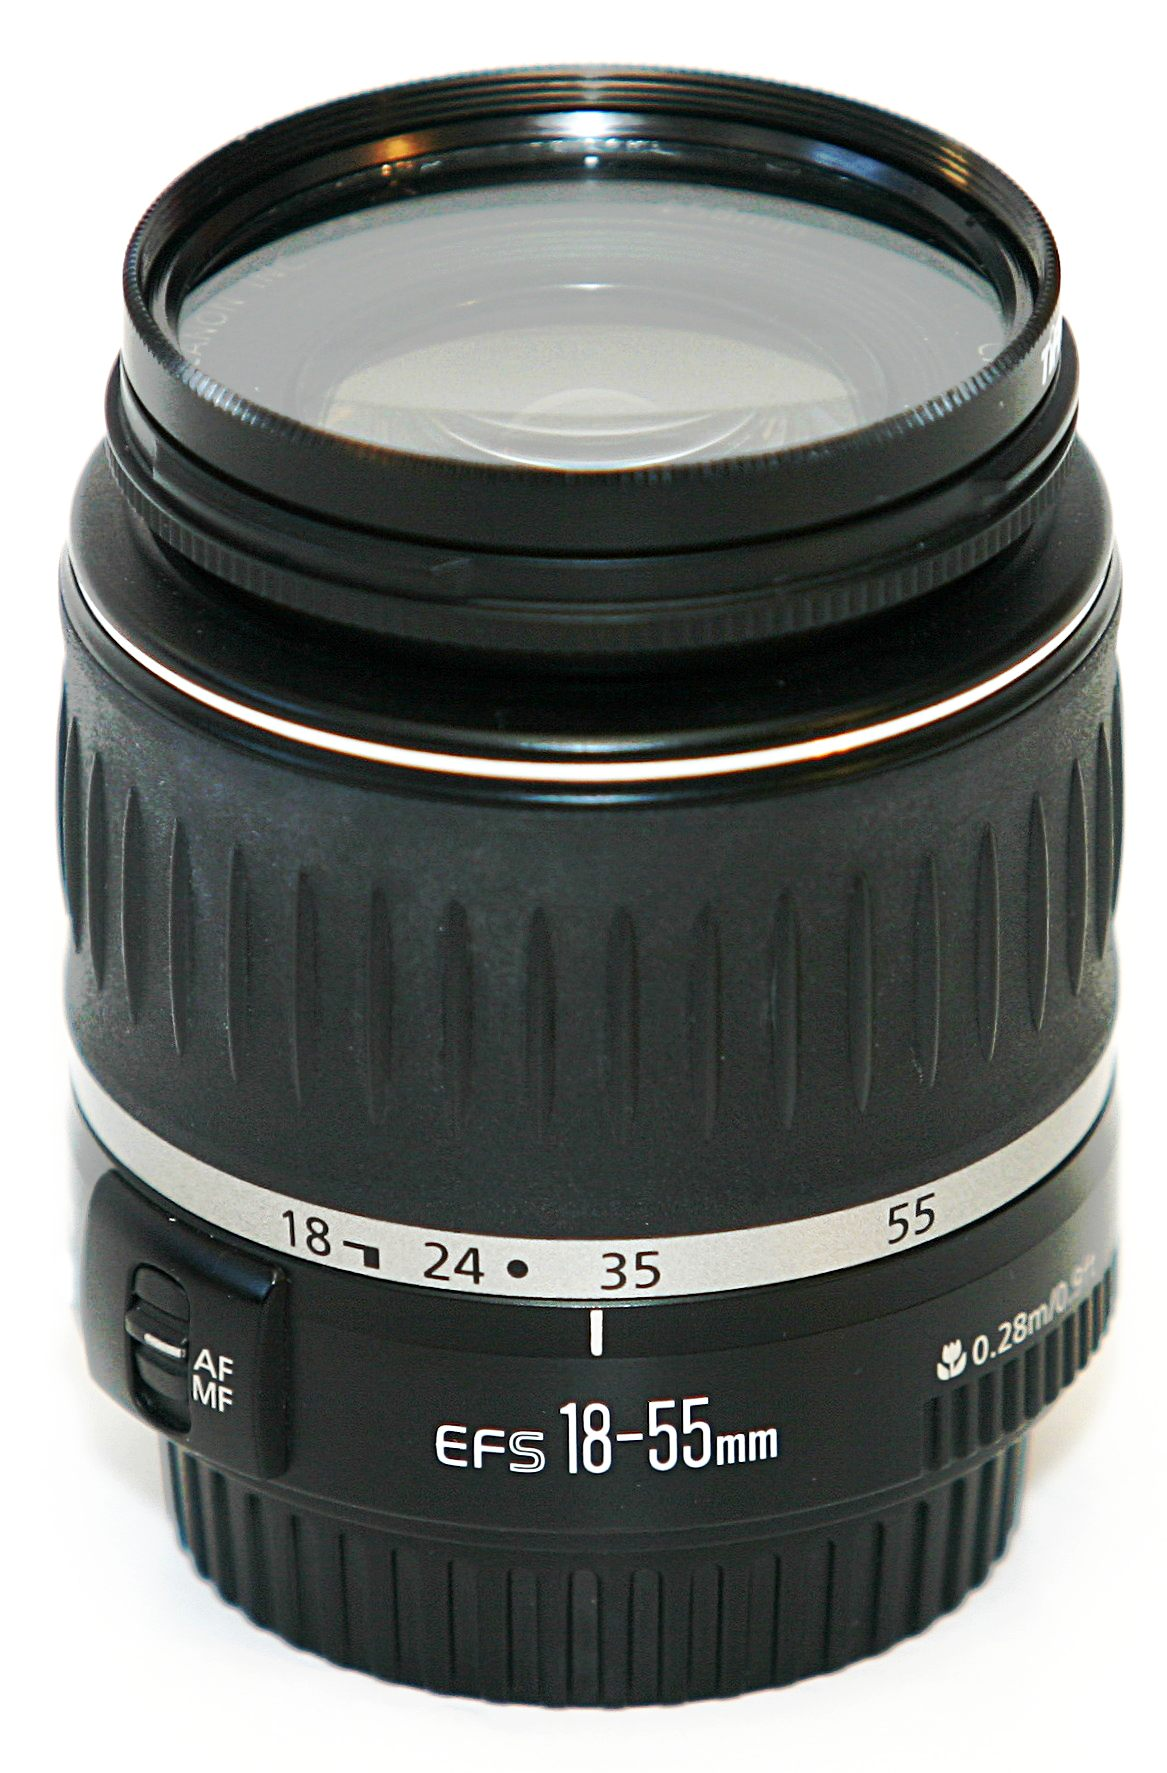 What do all those mm mean on camera lenses?